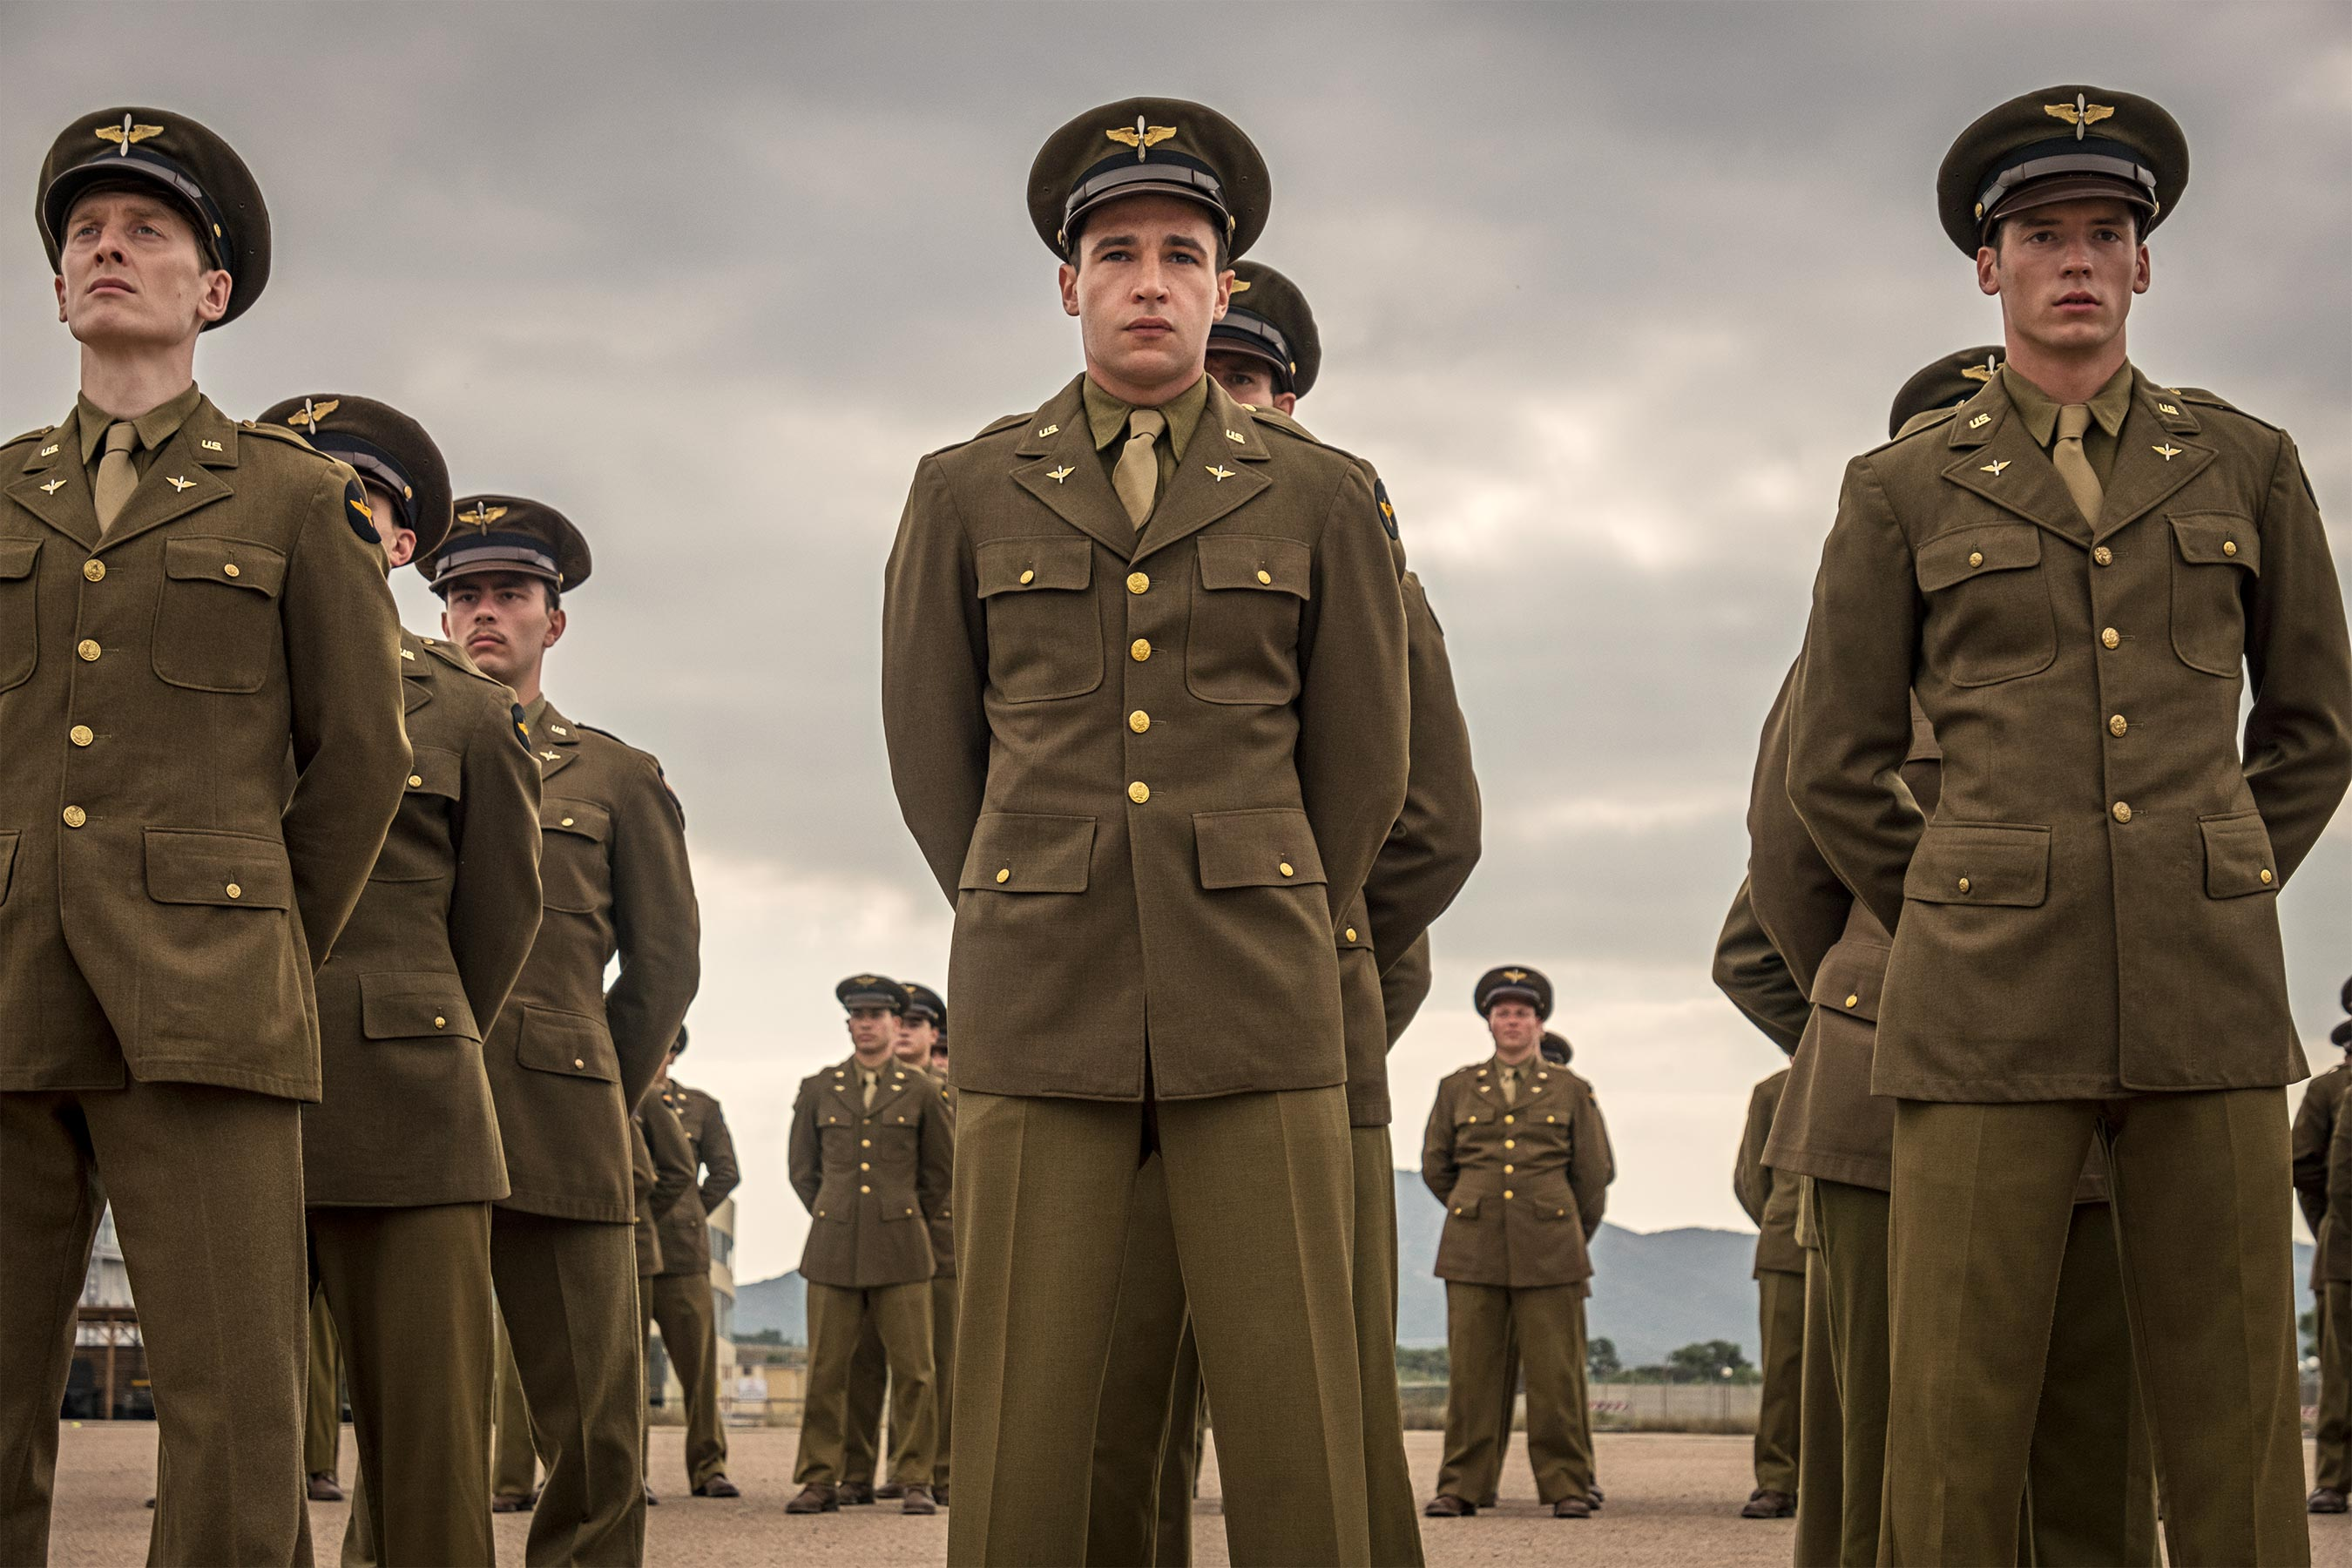 Catch 22 Episode 1 Yossarian (Christopher Abbott) and Clevinger (Pico Alexander)